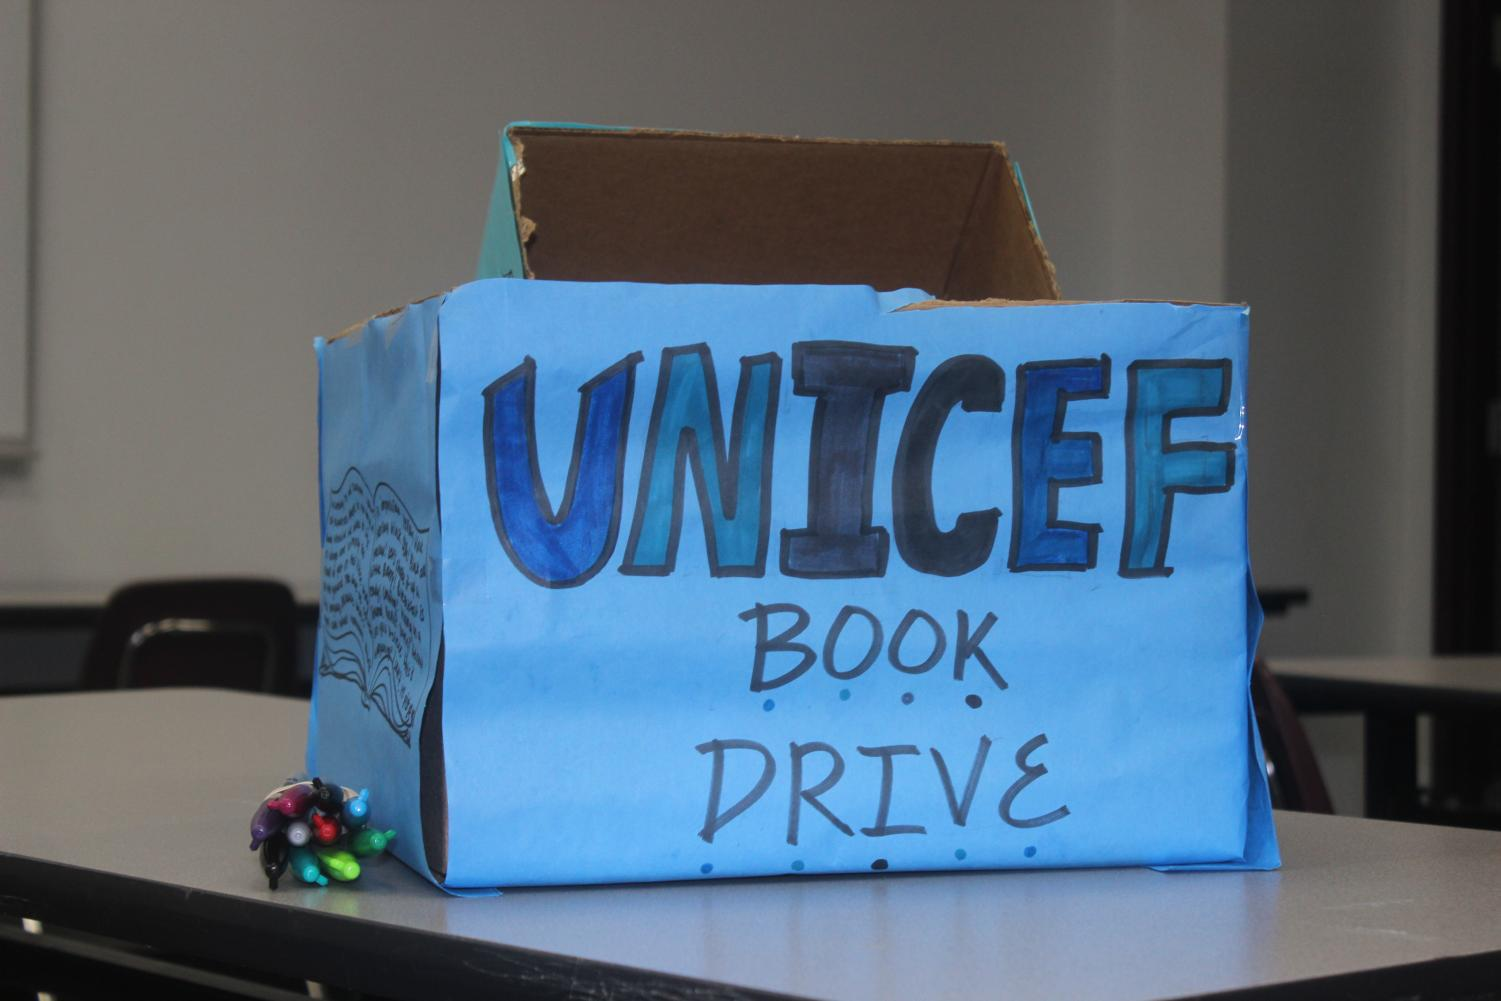 Handmade donation box for Plano Unicef book drive